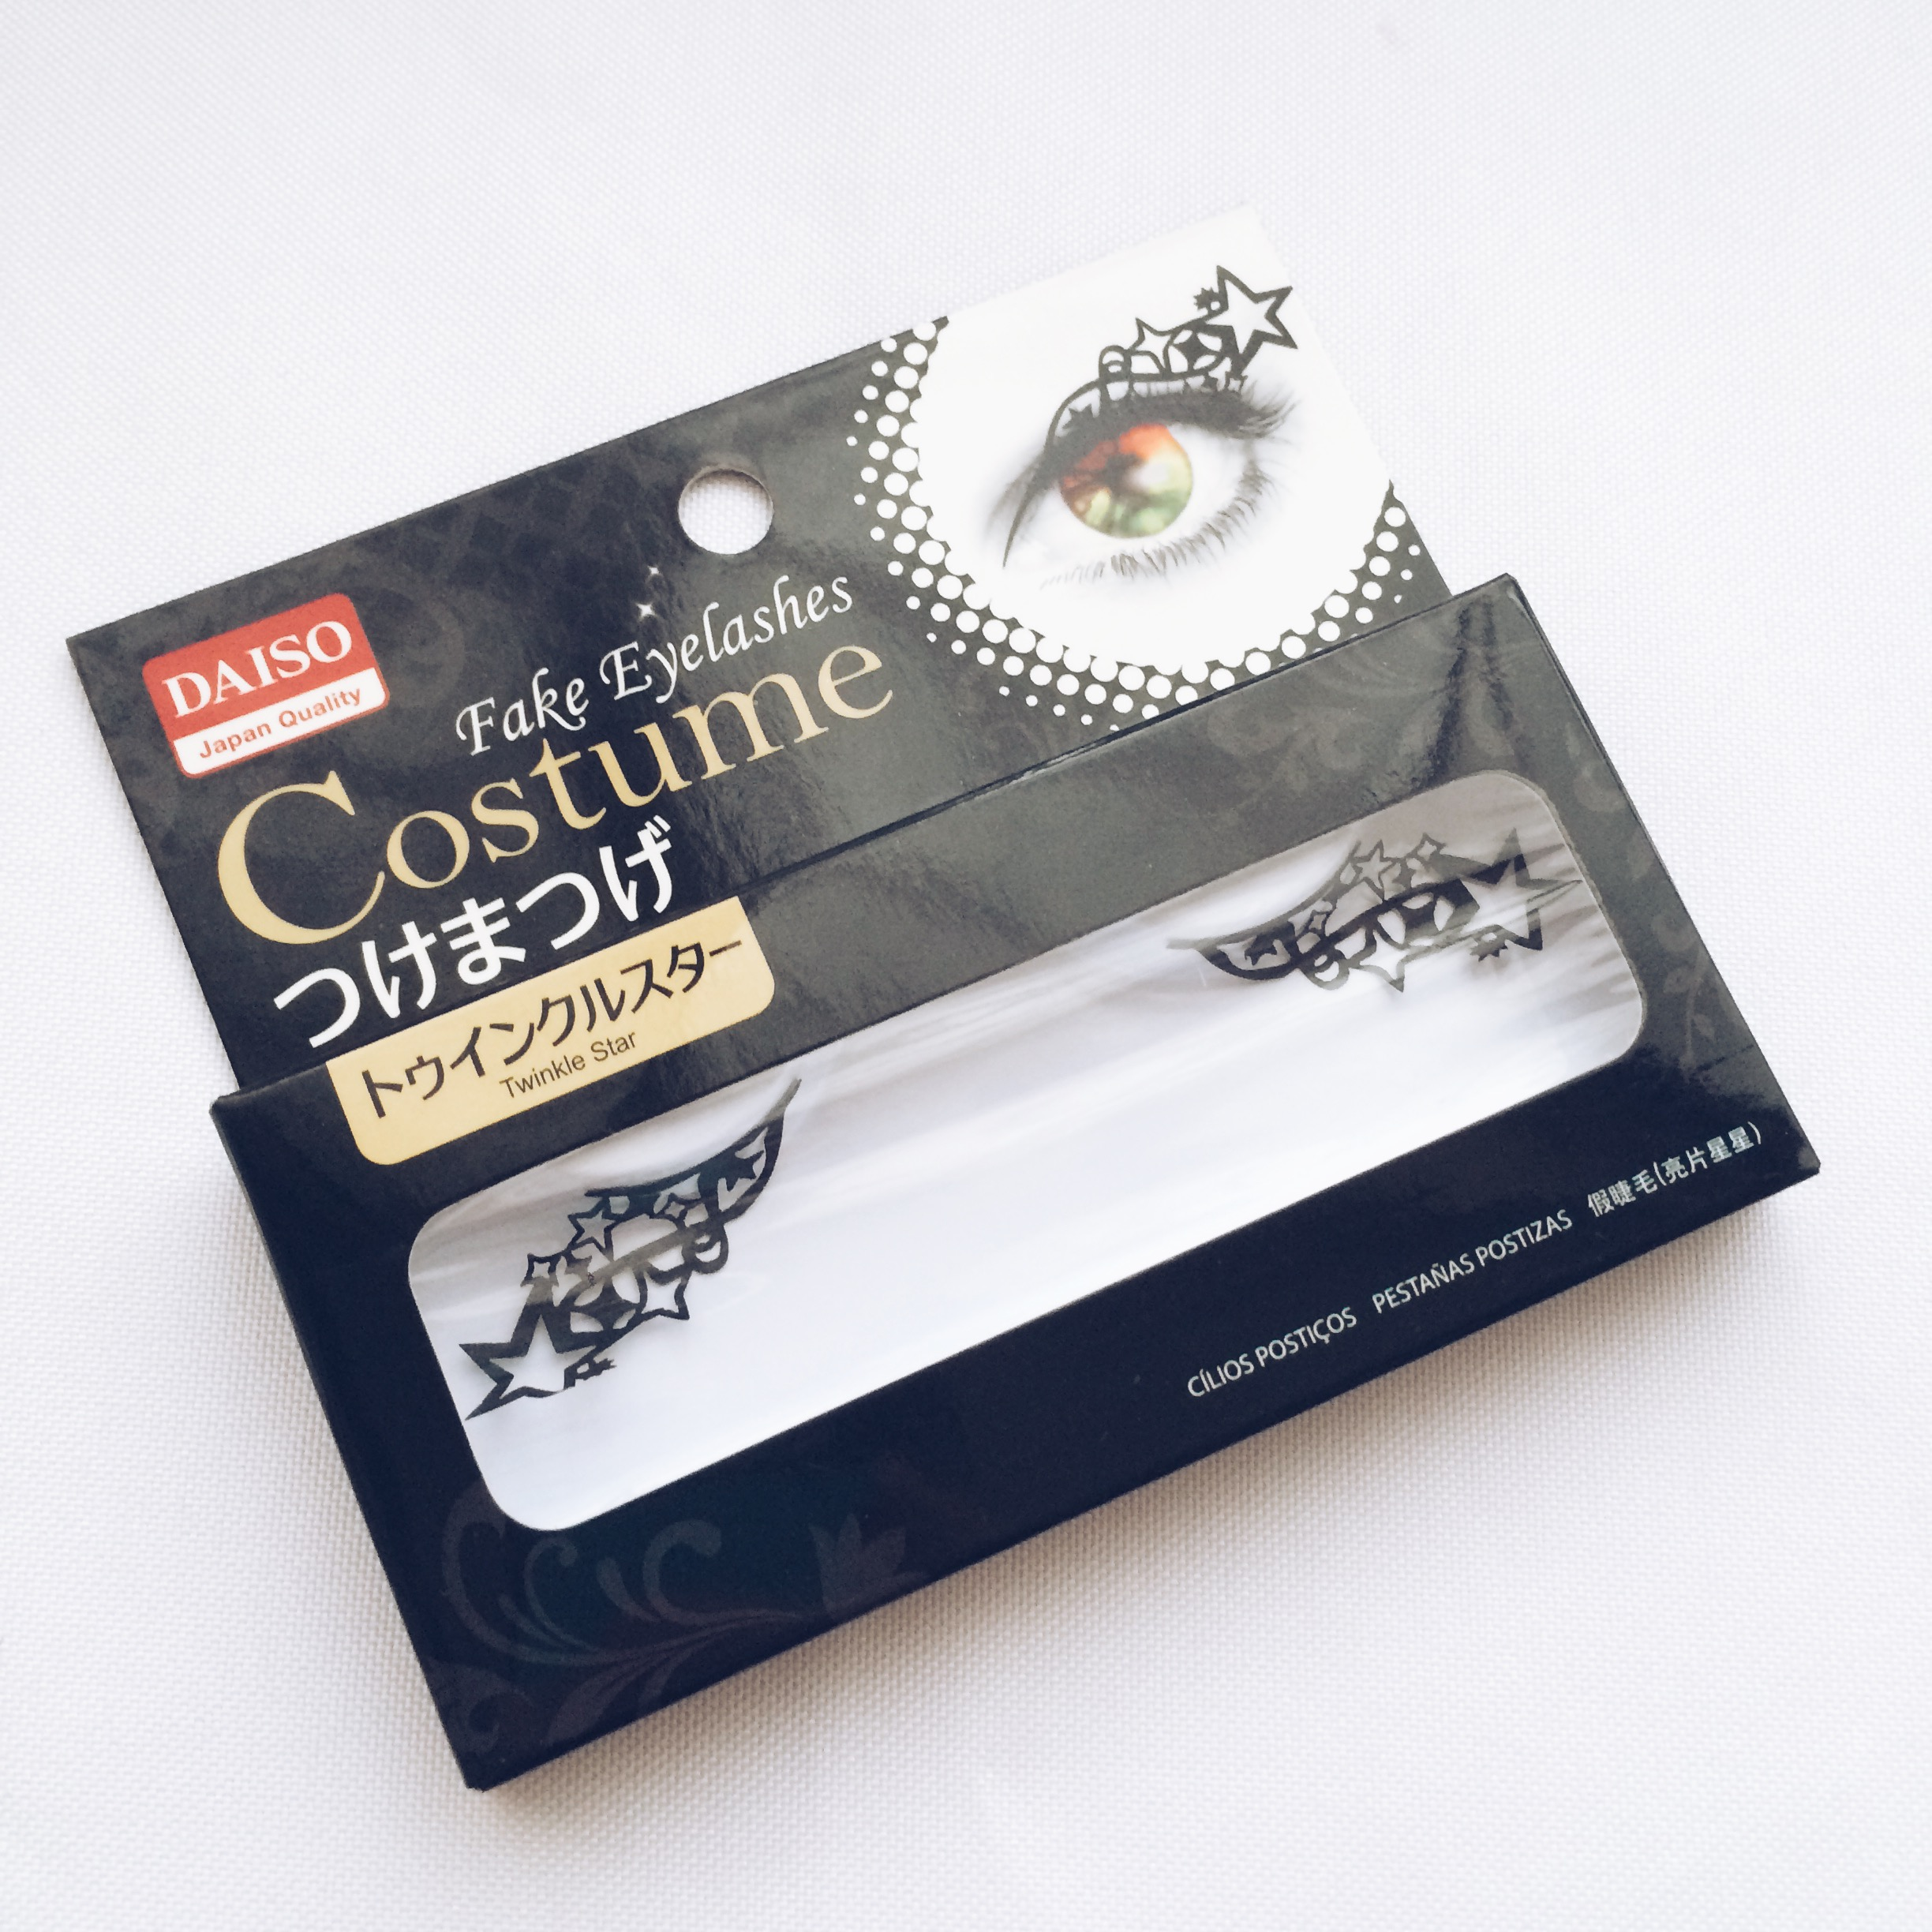 Review Daiso Costume Fake Eyelashes In Twinkle Star